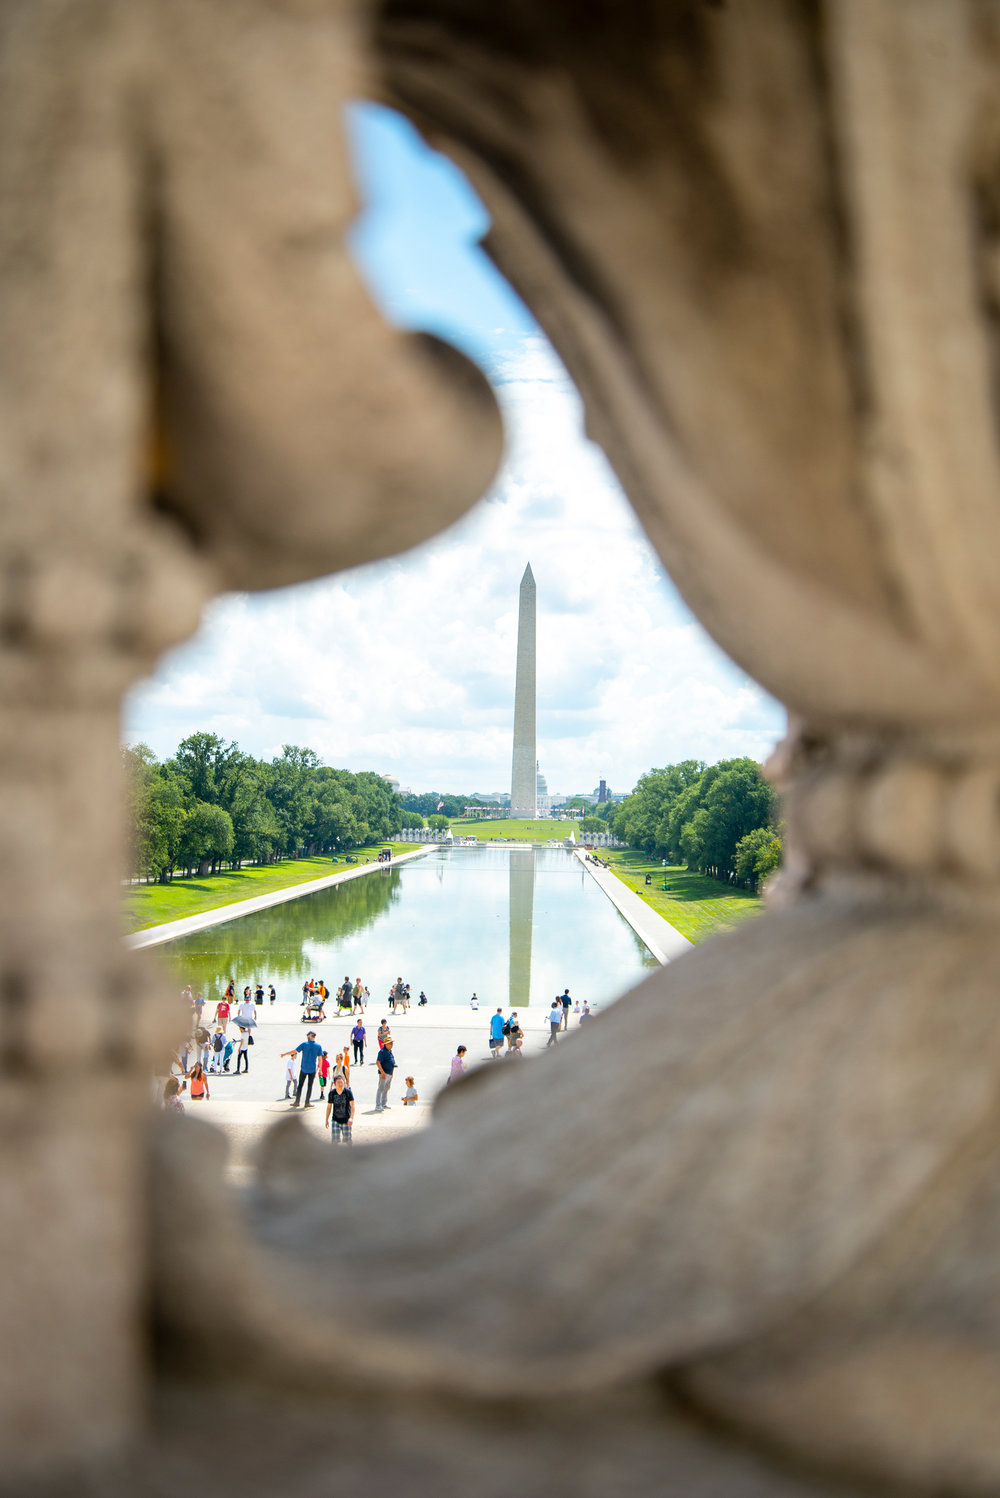 Washington D.C. Travel Guide for the 4th of July